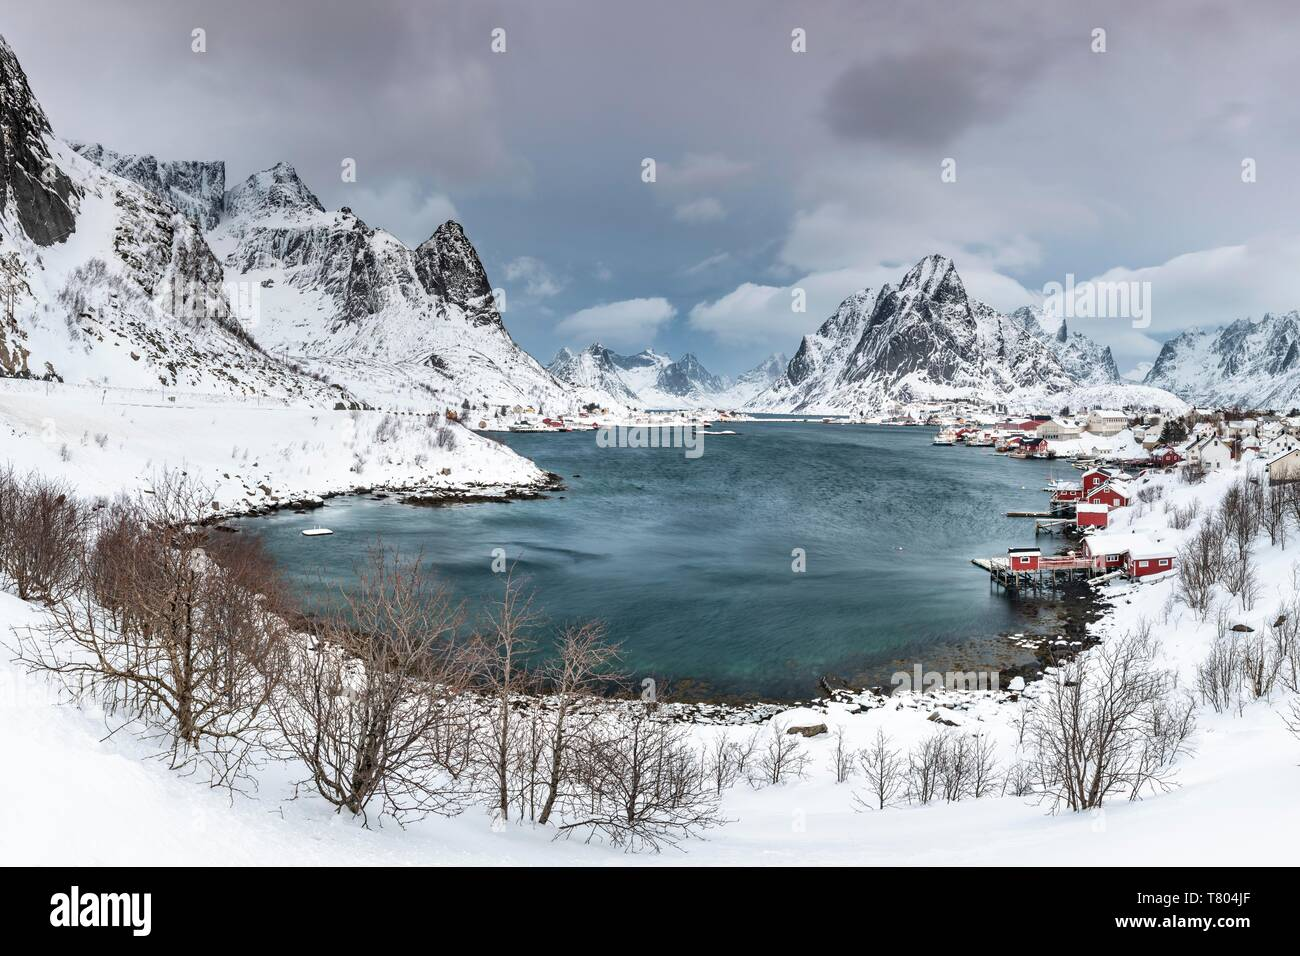 View of Reine with Reinefjord, snow-covered mountains at the back, Olstinden, Moskenesoya, Lofoten, Norway - Stock Image